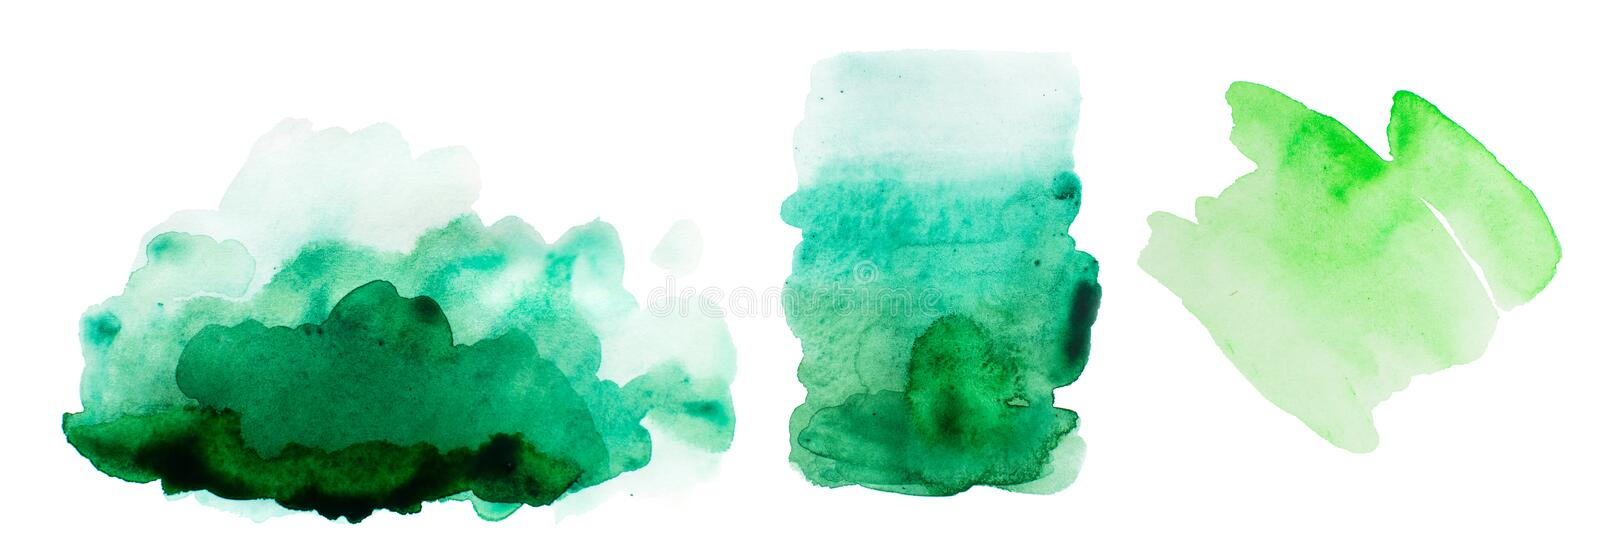 Watercolor green splash elements on white background royalty free illustration